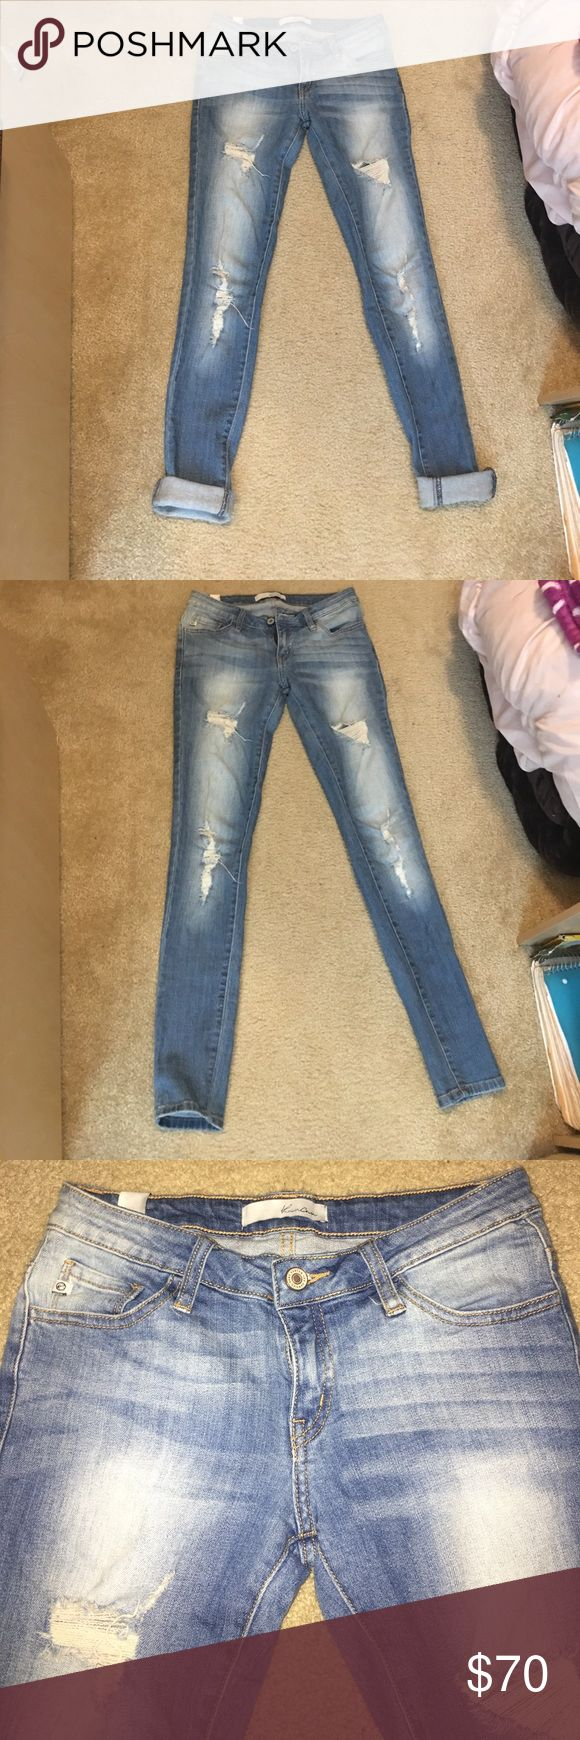 From buckle ripped jeans size 24 KanKan jeans from the Buckle store size 24 light washed basically brand new! In amazing condition. Jeans are from the Buckle store. Open to offers Buckle Jeans Skinny